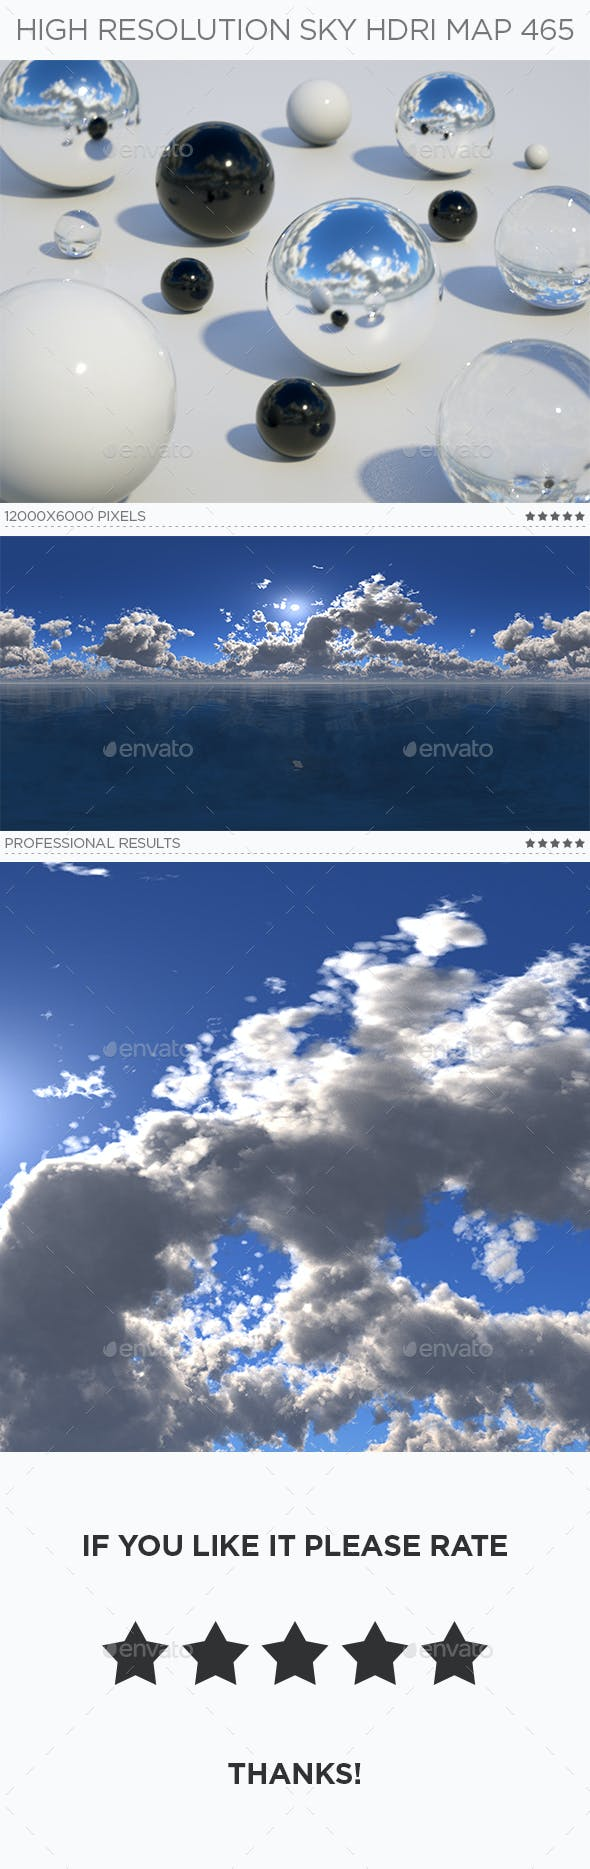 High Resolution Sky HDRi Map 465 - 3DOcean Item for Sale